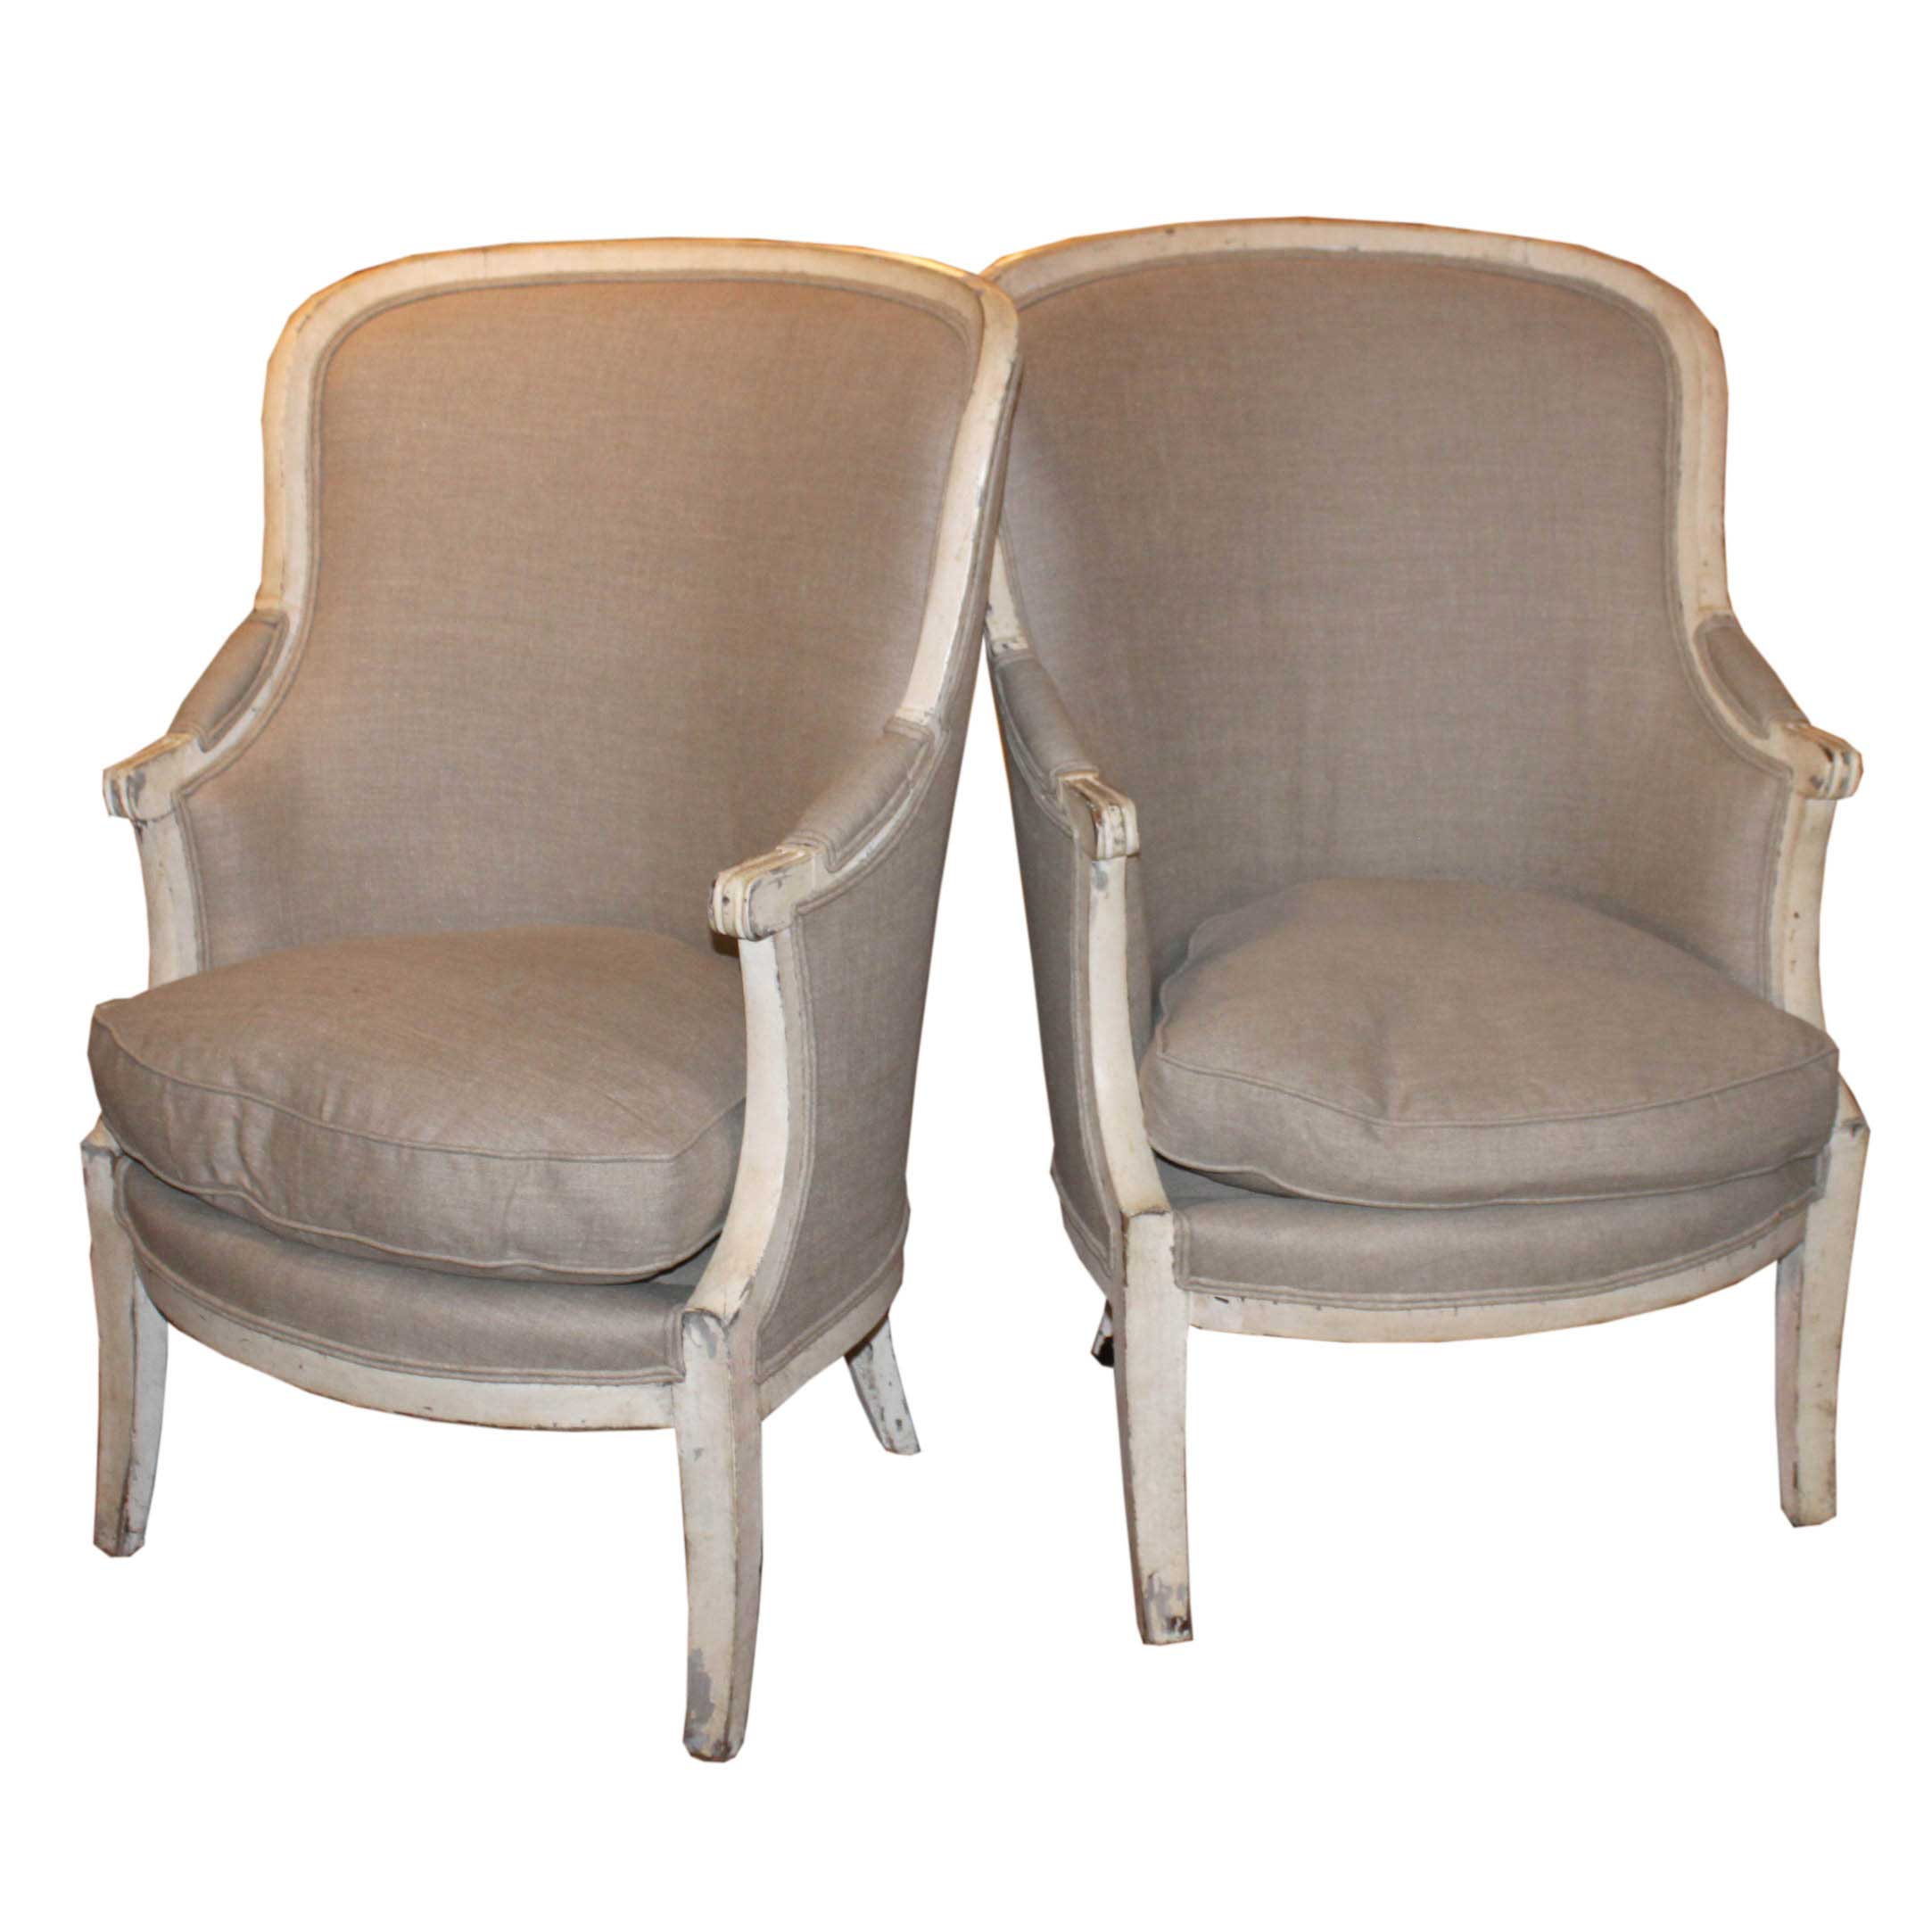 french barrel chair space saving high pair of 19th century upholstered back chairs